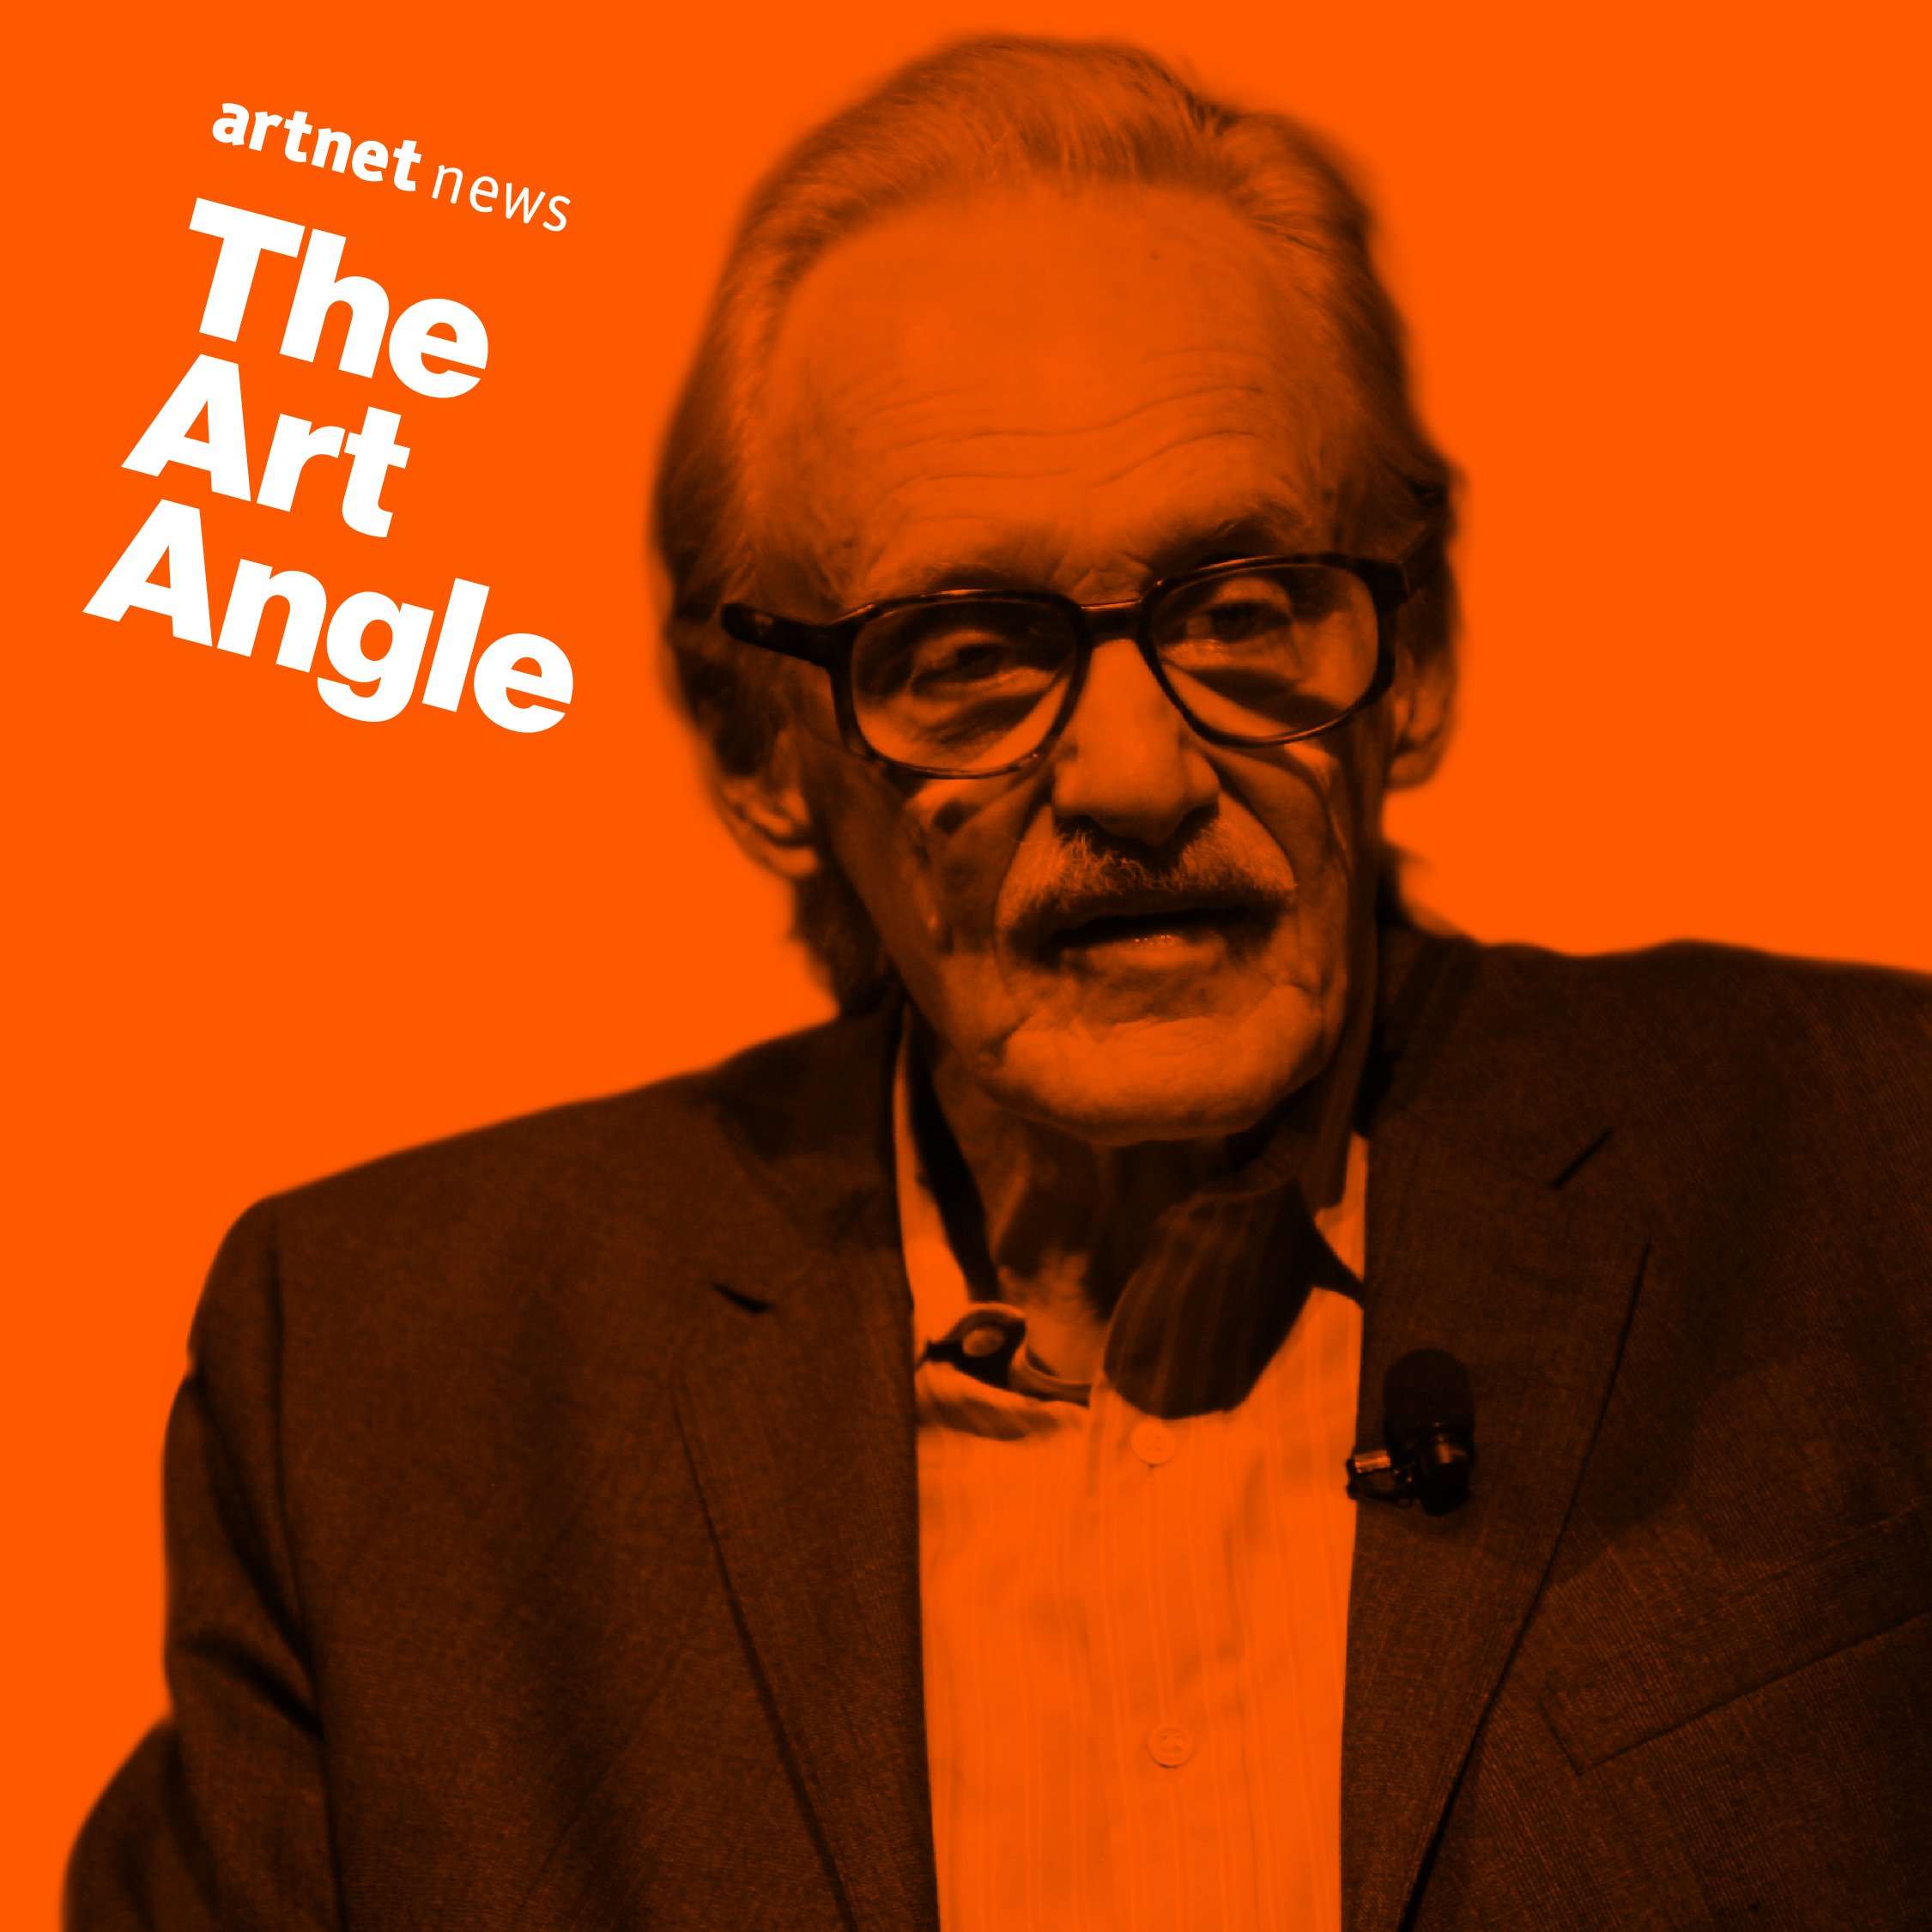 The Art Angle Podcast: The New Yorker's Peter Schjeldahl on His Adventures in Life as an Accidental Art Critic